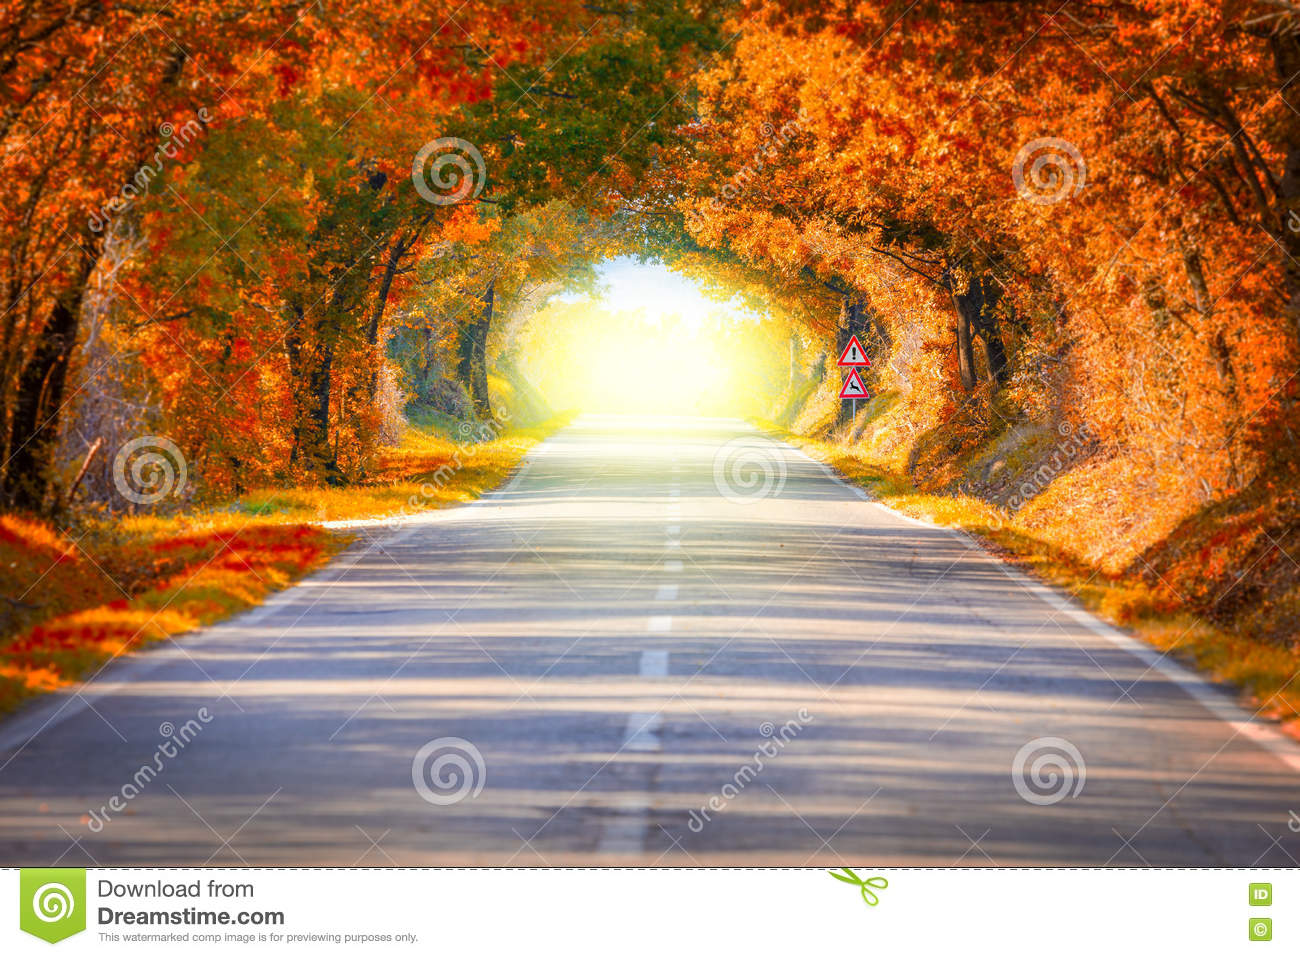 Autumn Fall Road landscape - trees tunne and magic light